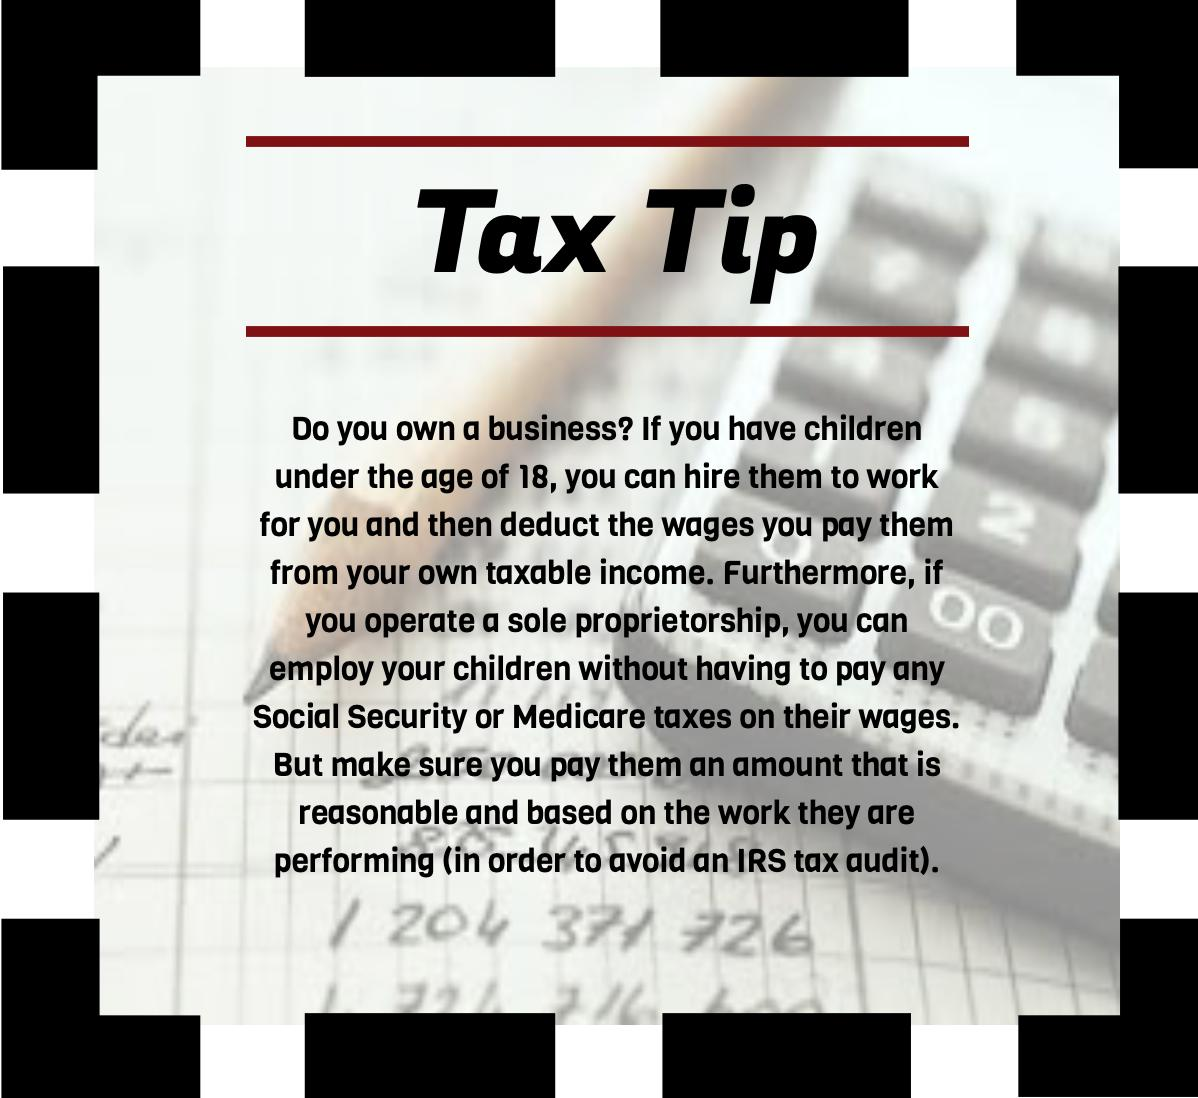 Another #TaxTipTuesday coming in hot!! #cpa #accountant #taxes #taxtips #taxday #taxseason #taxreturn #taxpreparer #taxhelp #incometax #bookkeeper #business #IRS #money #finance<br>http://pic.twitter.com/YetXdHJ7G1